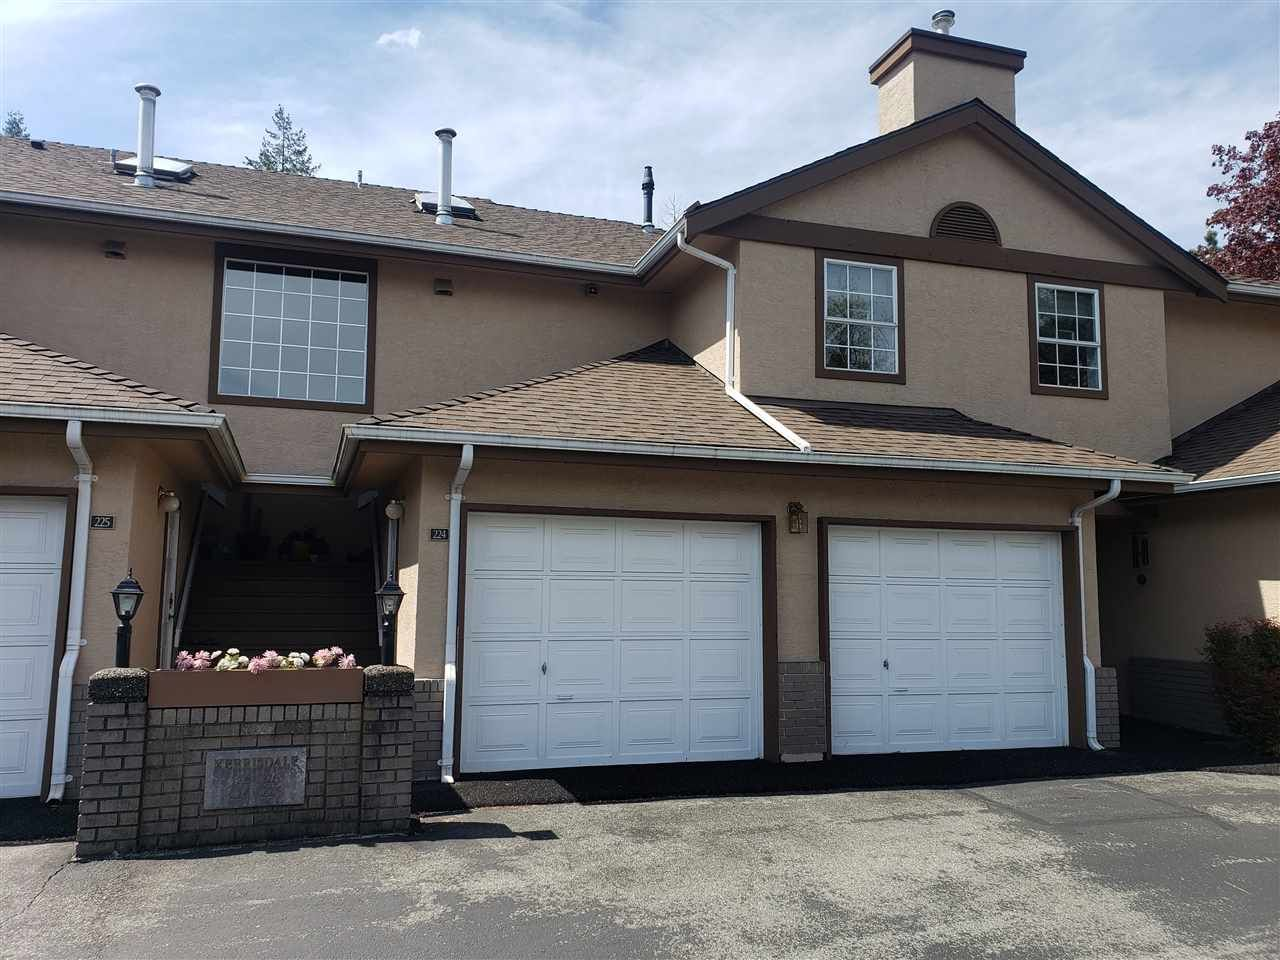 """Main Photo: 224 14861 98 Avenue in Surrey: Guildford Townhouse for sale in """"The Mansions"""" (North Surrey)  : MLS®# R2429452"""